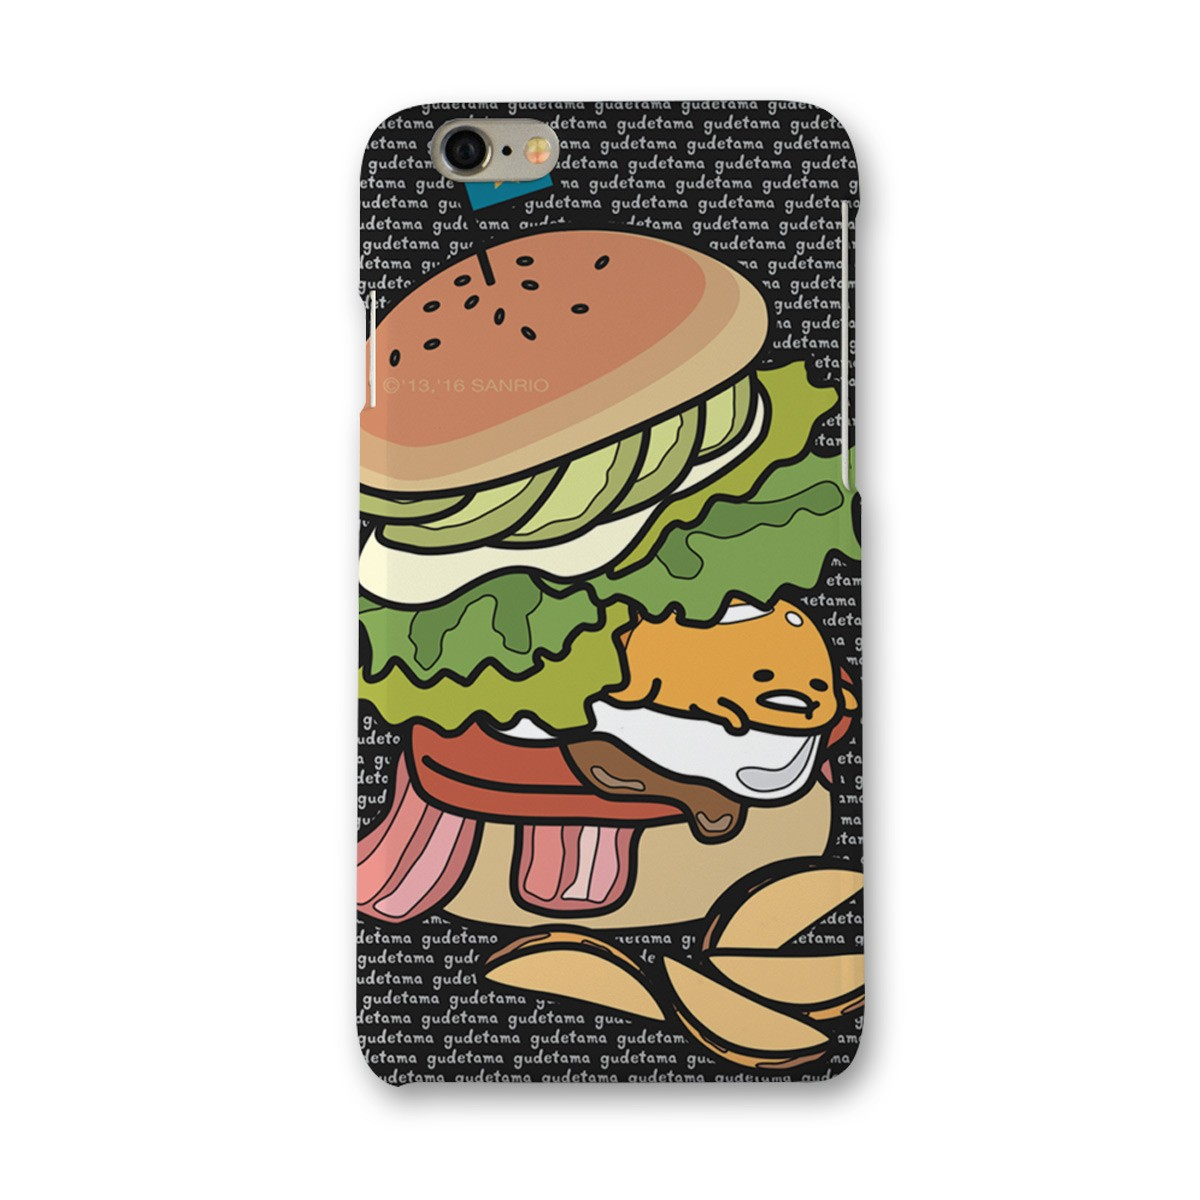 Capa para iPhone 6/6S Gudetama Burger